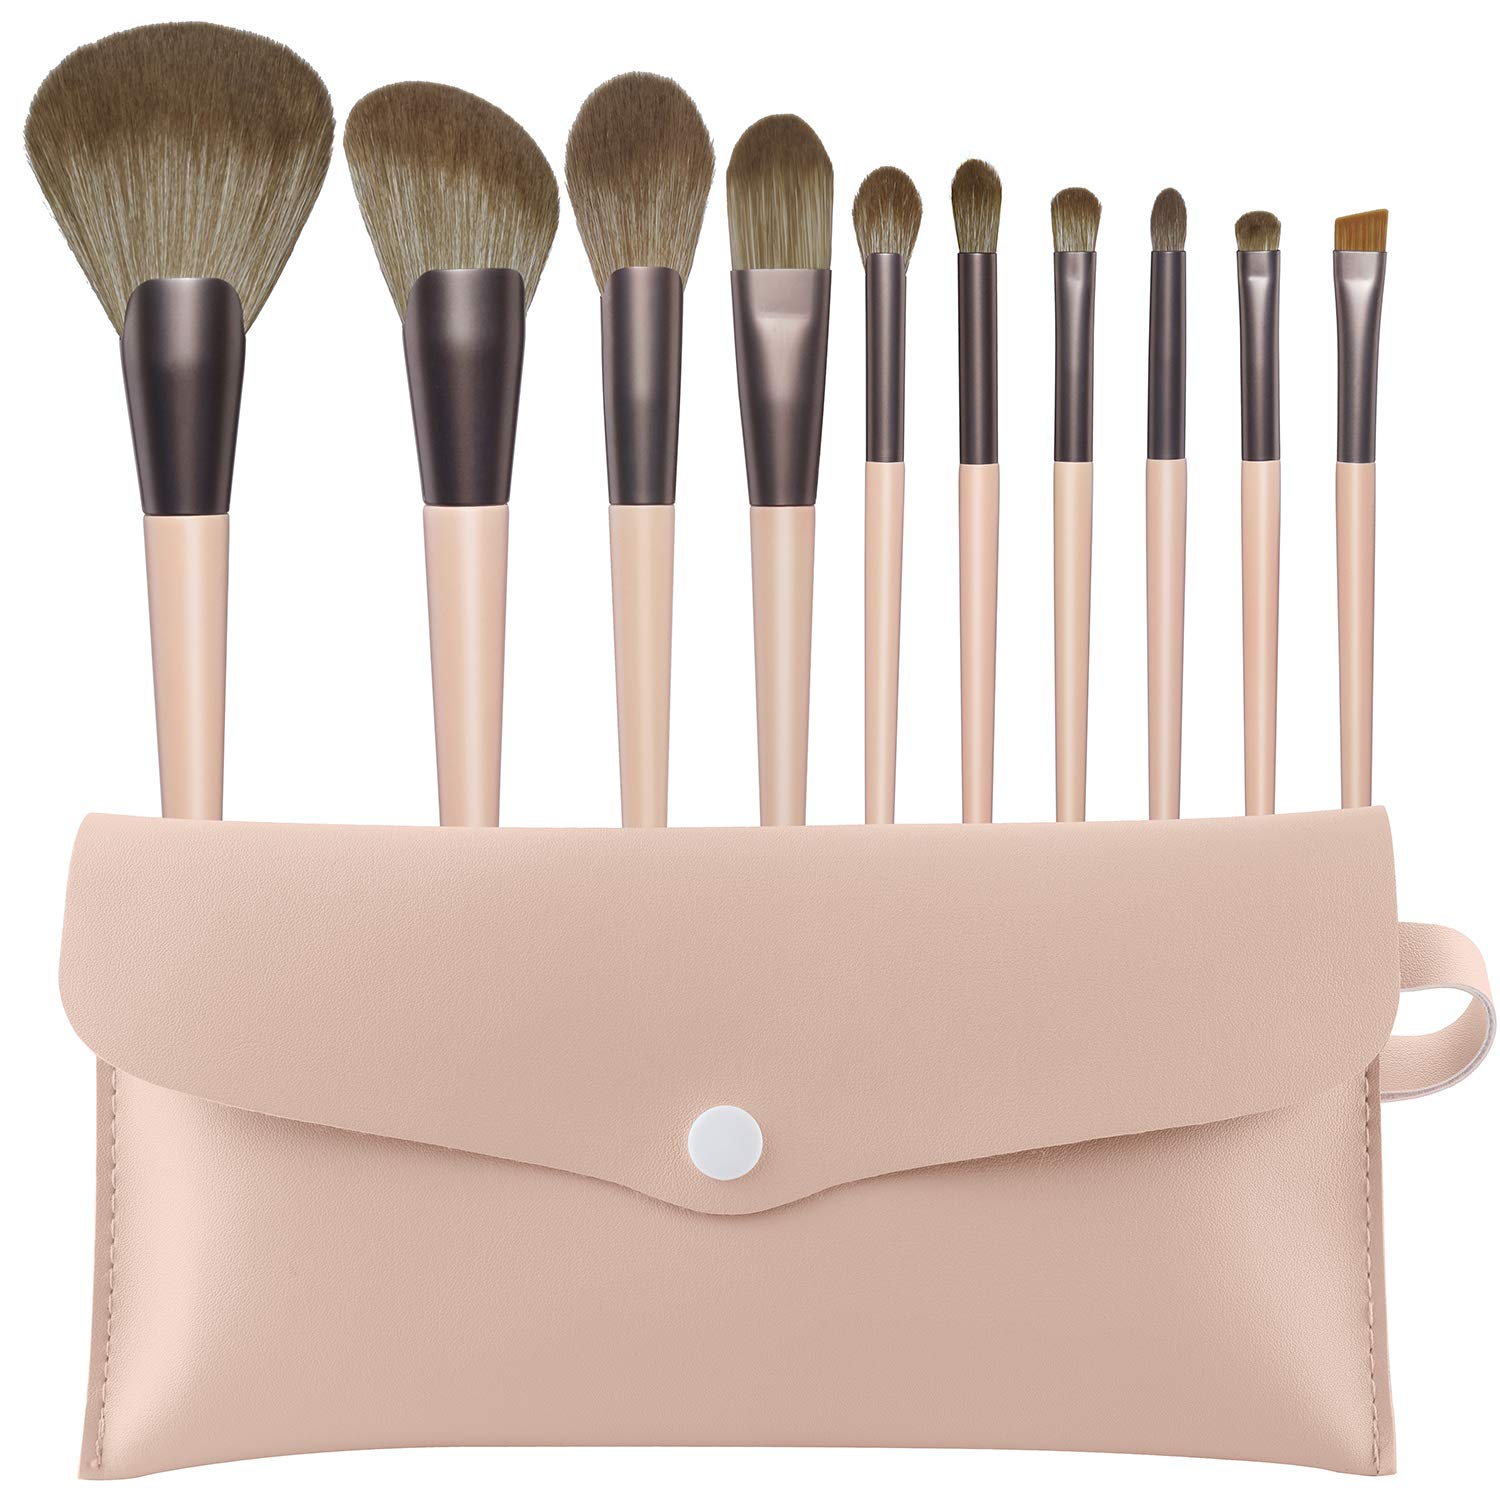 Premium Synthetic Makeup Brushes Set – 10 Pcs Cosmetic Brushes for Makeup with Carry Bag, Great for Foundation Powder,Concealers and Eye Shadows, Idea Gift for Lovers (Pink)